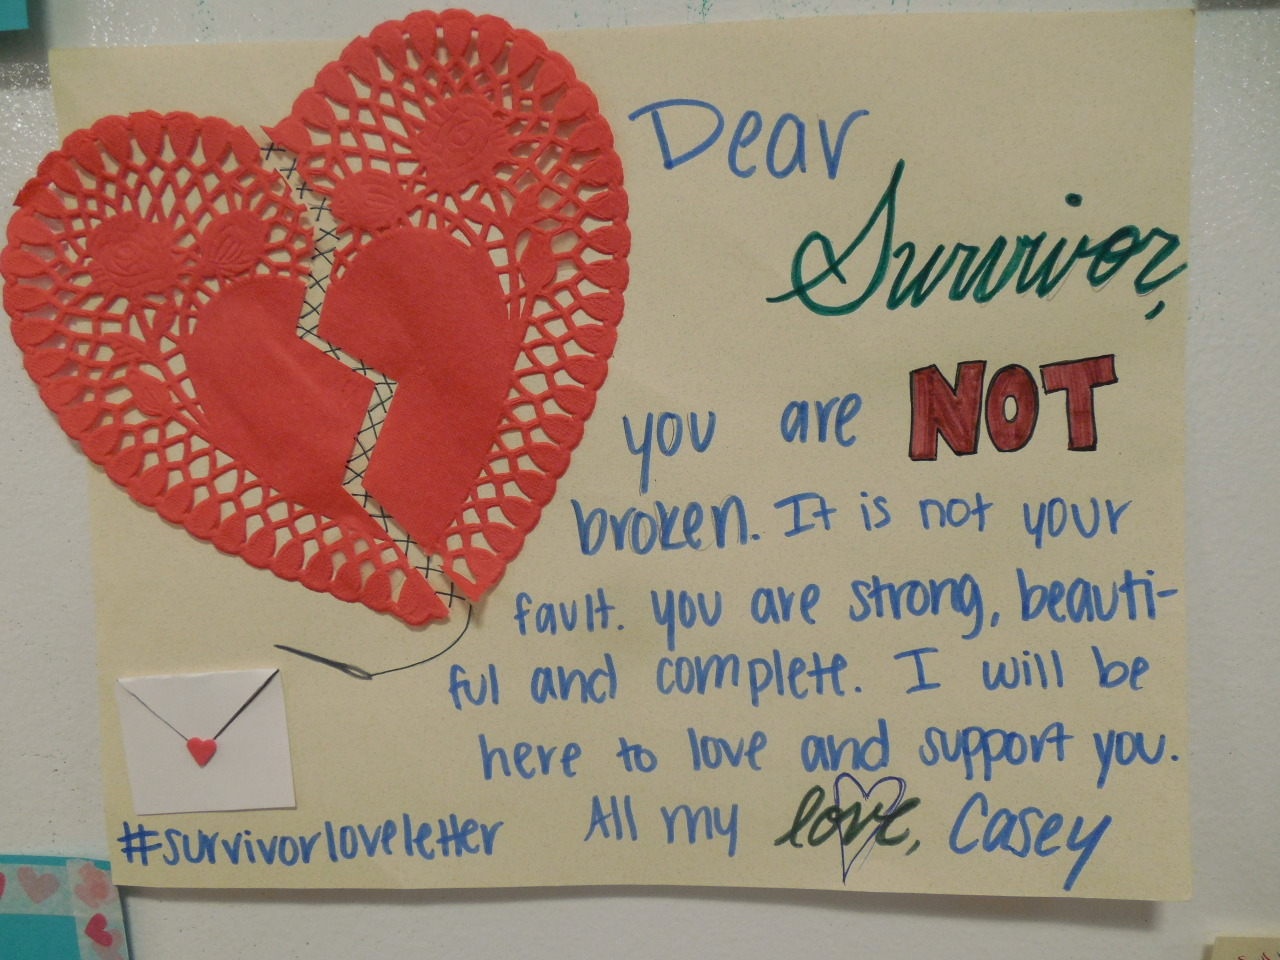 Dear Survivor,  You are NOT broken. It is not your fault. You are strong, beautiful and complete. I will be here to love and support you.  All my love, Casey  #survivorloveletter